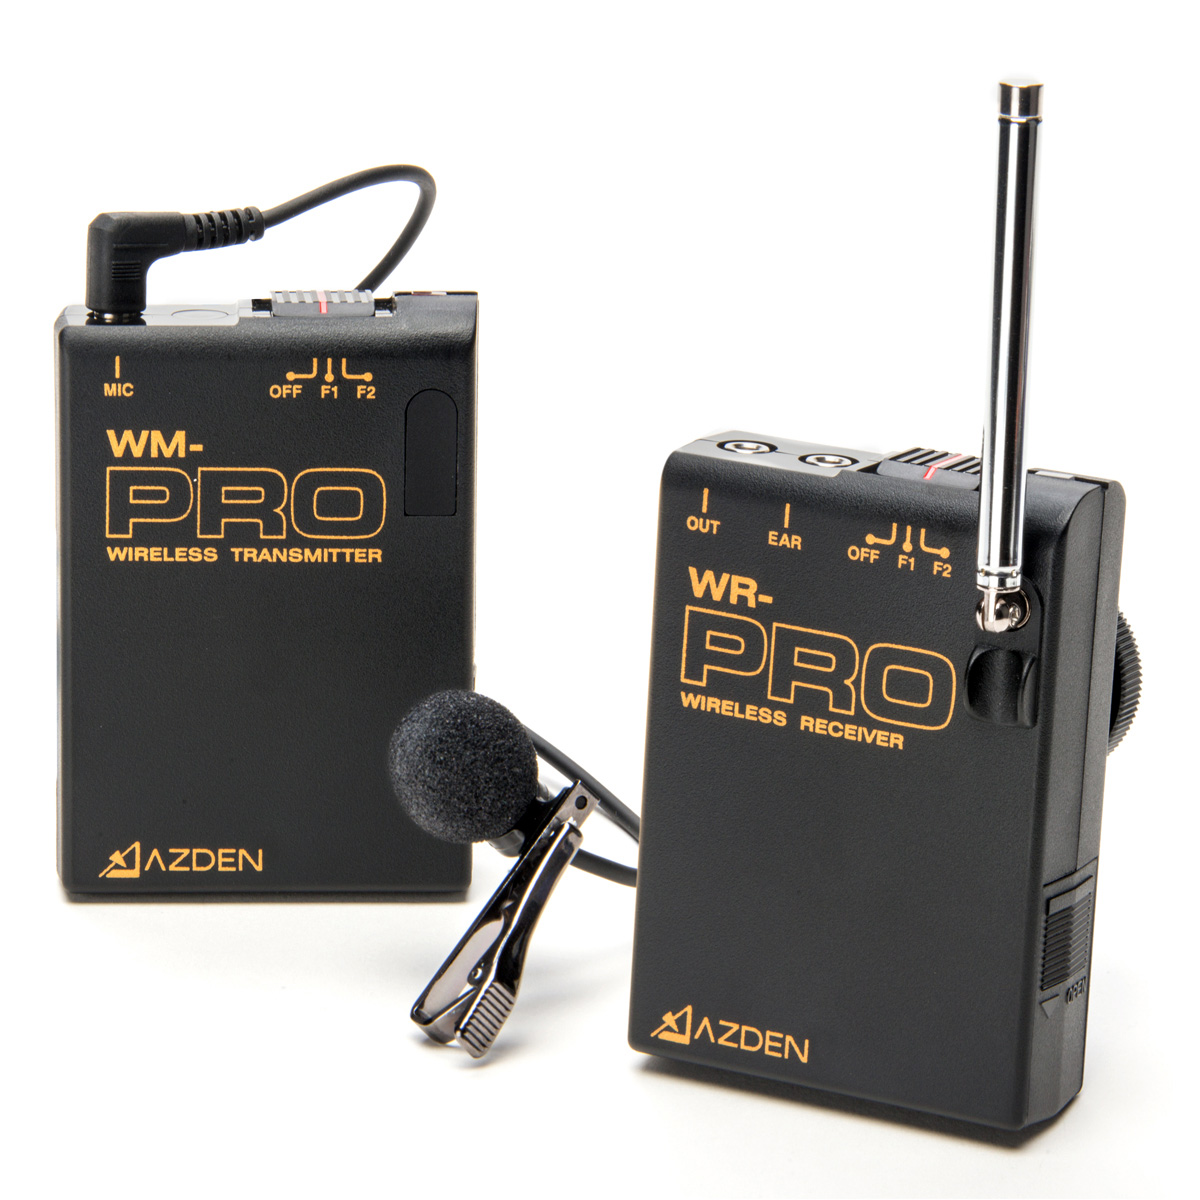 azden wlx pro plus i vhf wireless lavalier microphone system for cameras mobile devices f1 f2. Black Bedroom Furniture Sets. Home Design Ideas